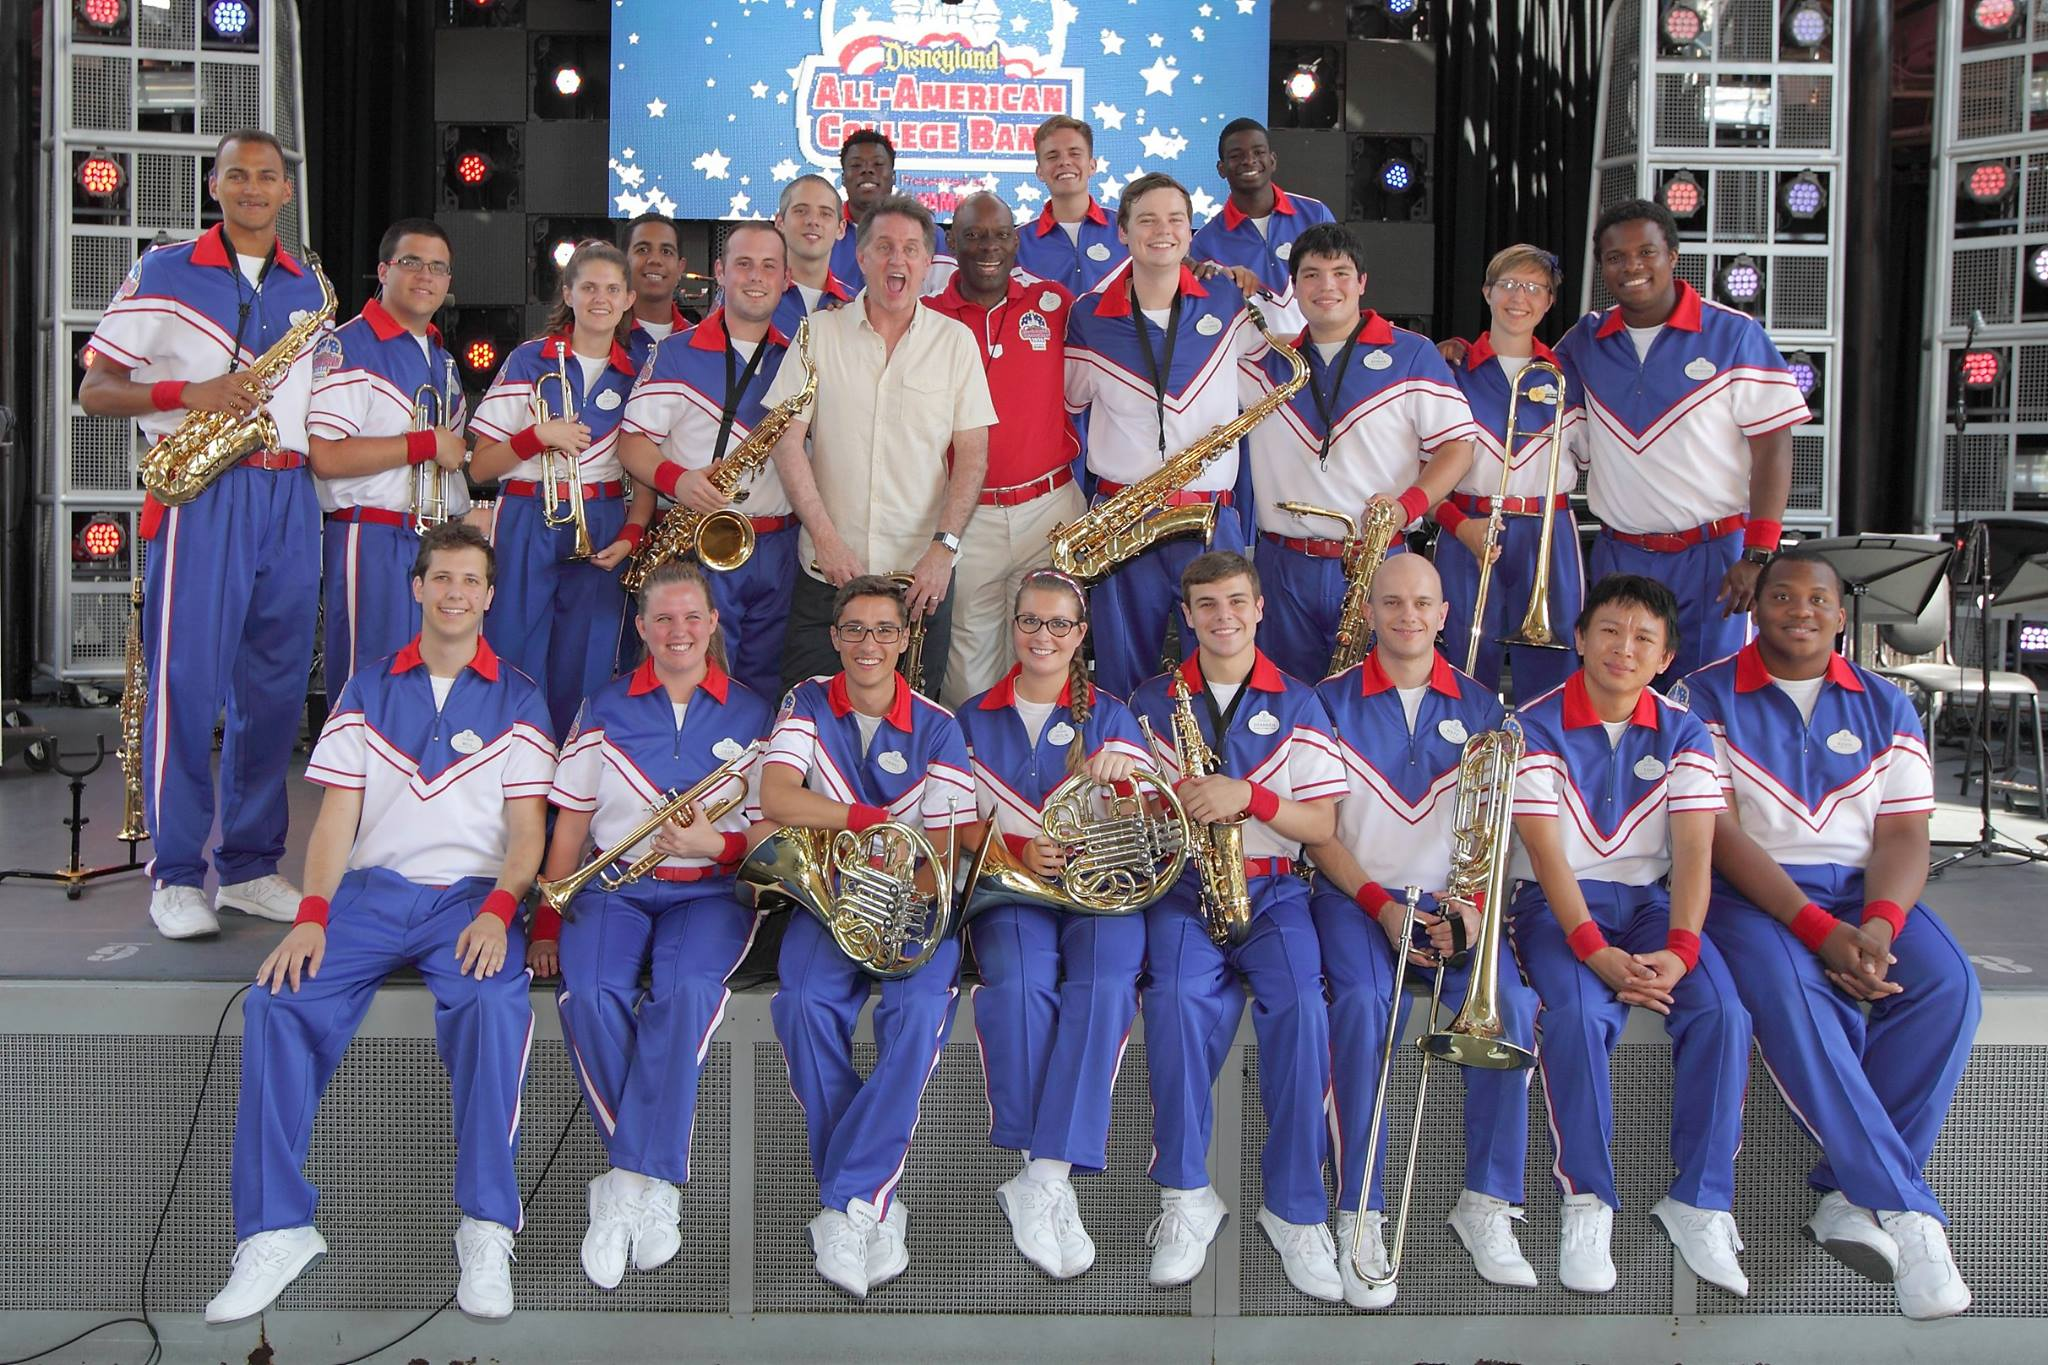 Gordon Goodwin and the Disneyland Resort 2016 All-American College Band